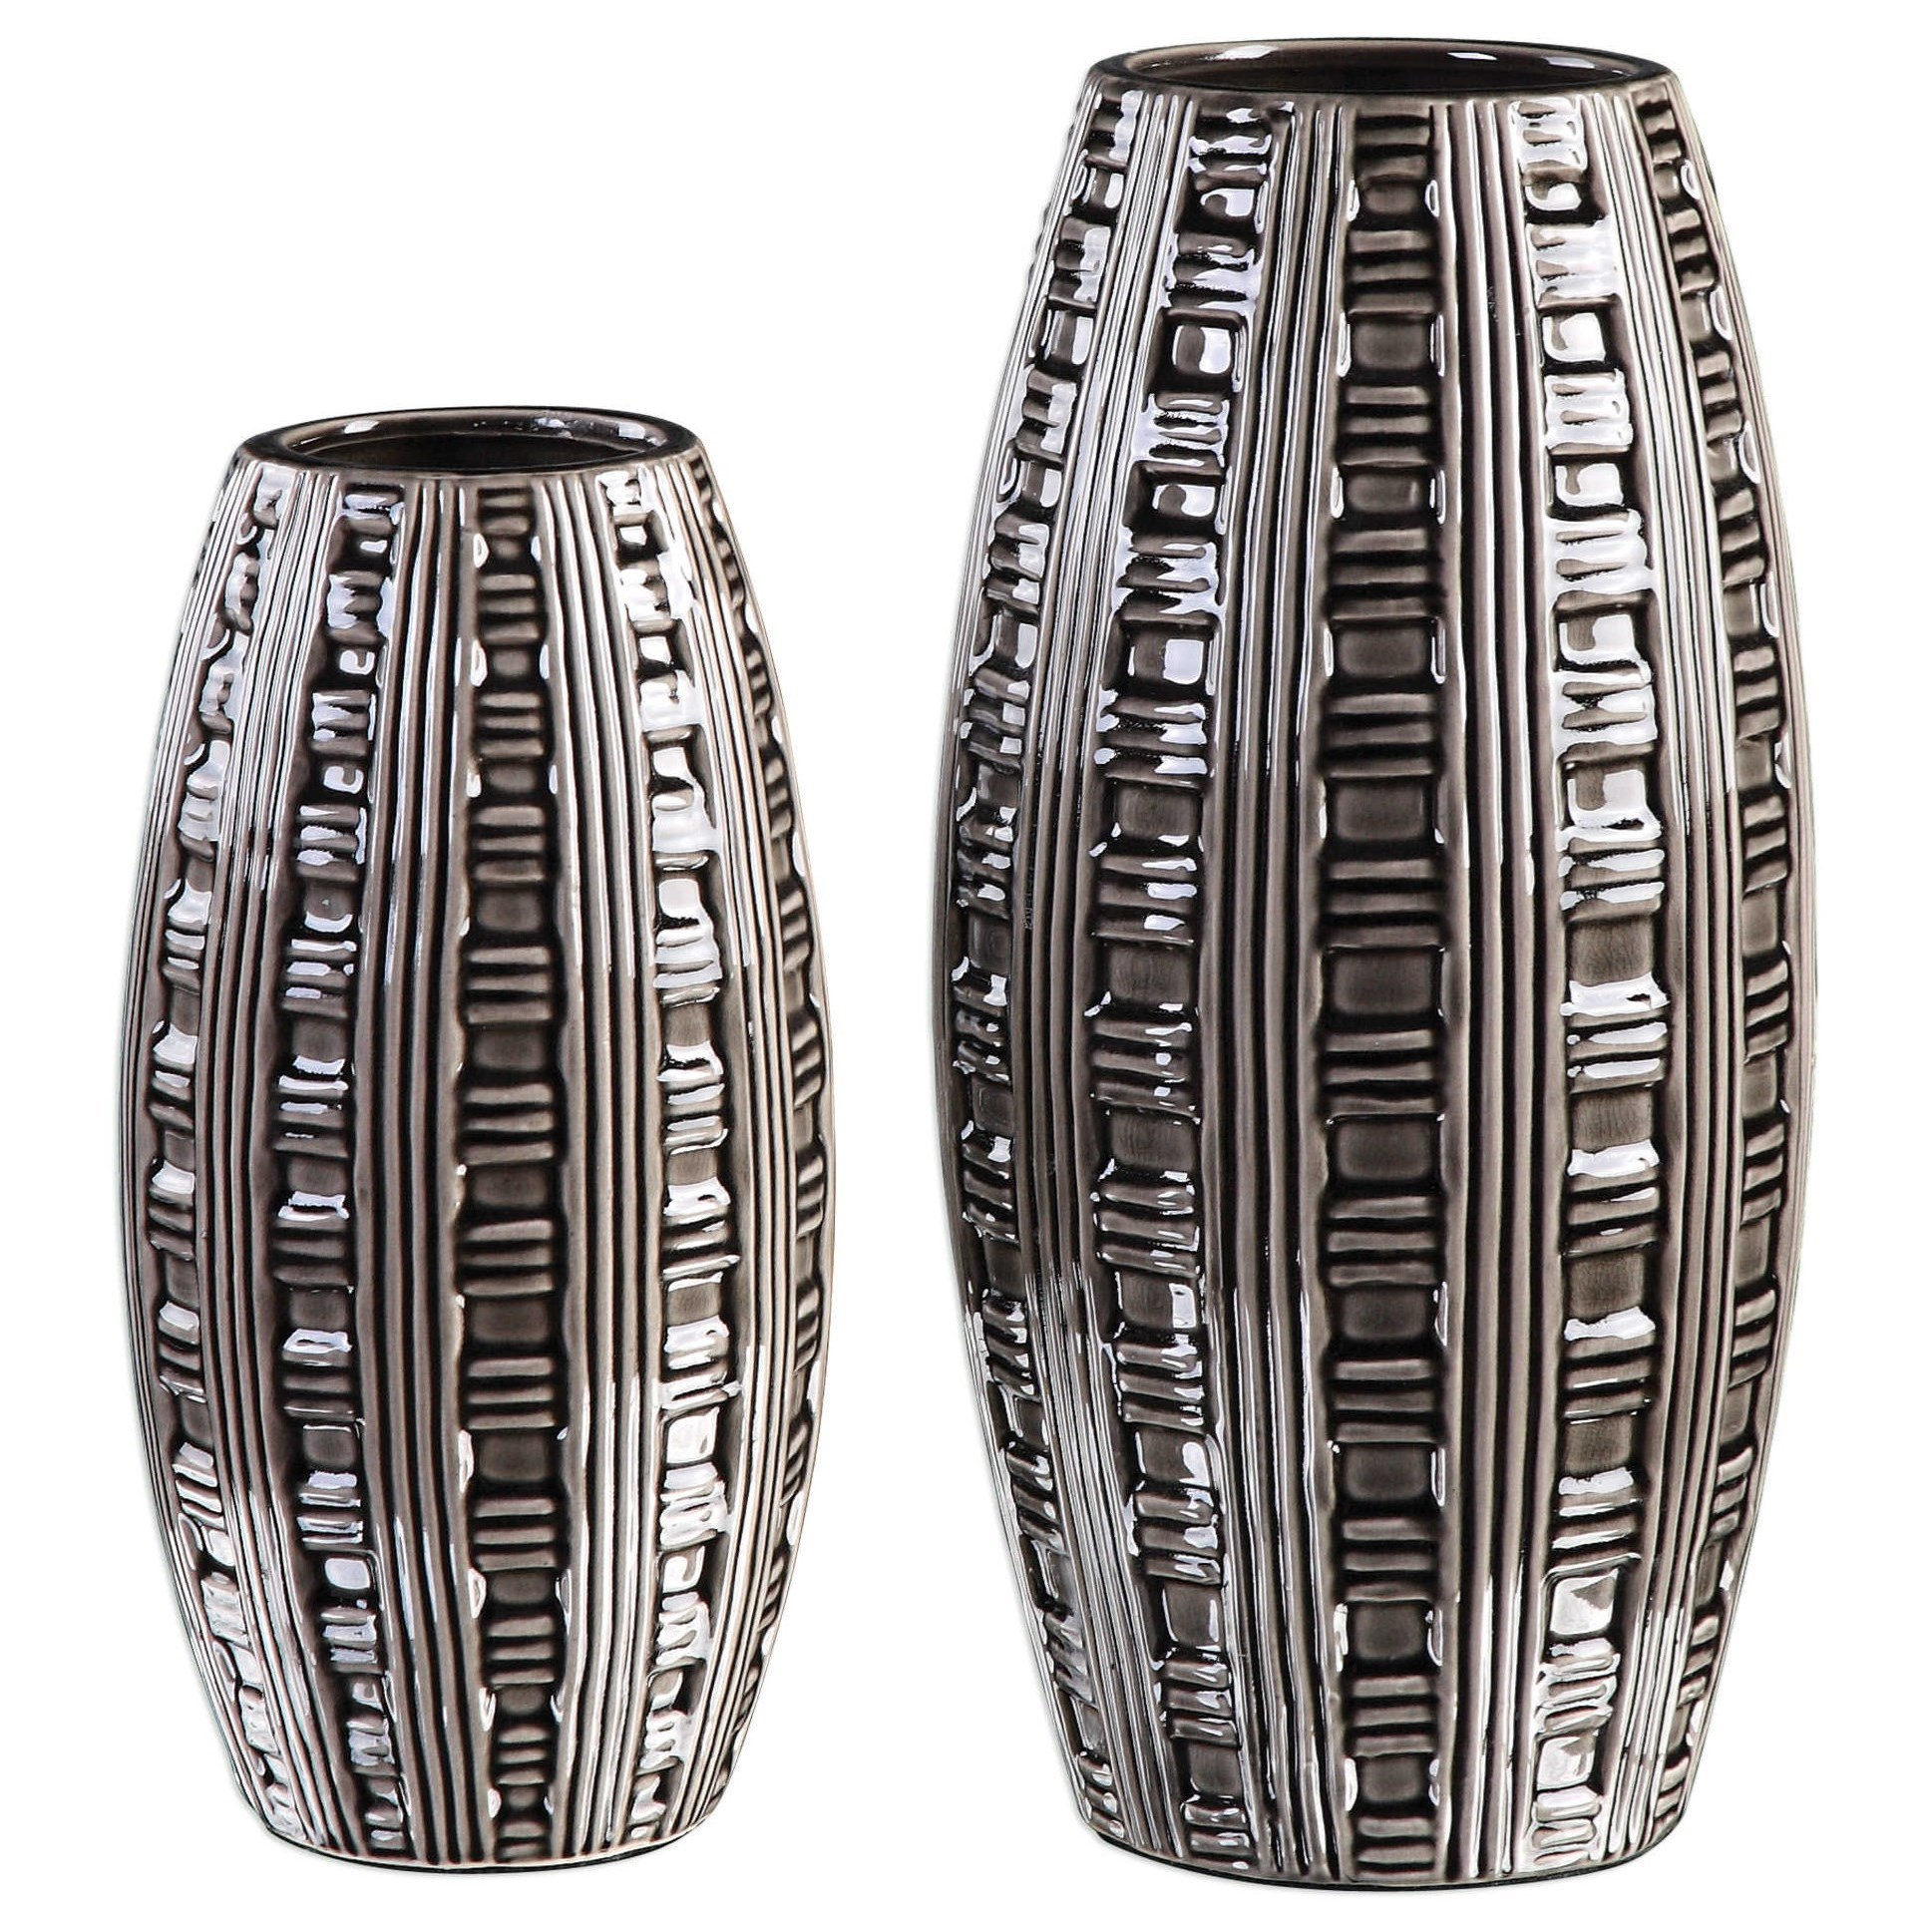 Accessories - Vases and Urns Aura Weave Pattern Vases (Set of 2) by Uttermost at Mueller Furniture